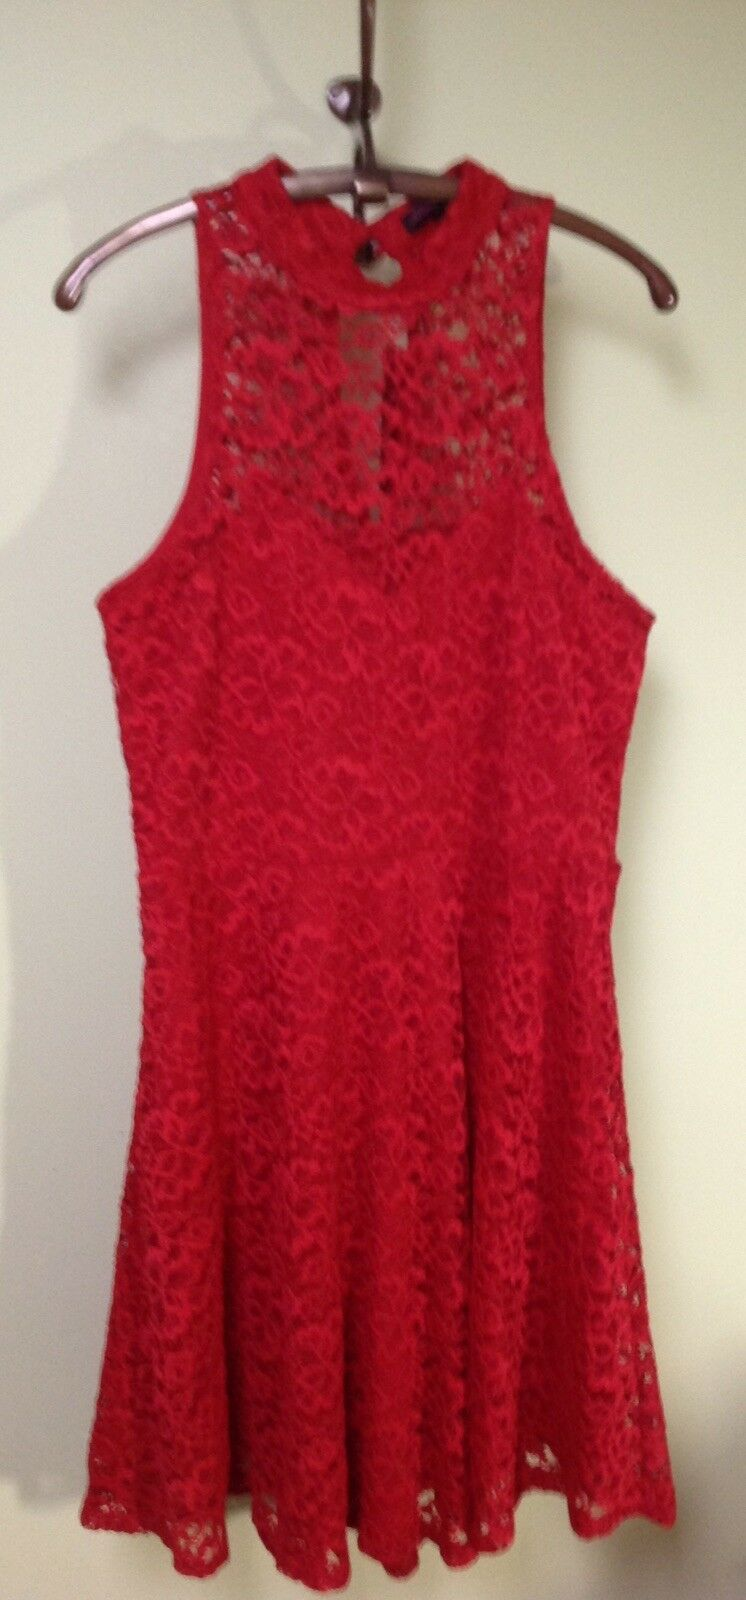 NWTMATERIAL GIRL Red Lace Dress Fit & Flare JuniorsLSexy 49.50 RMust C